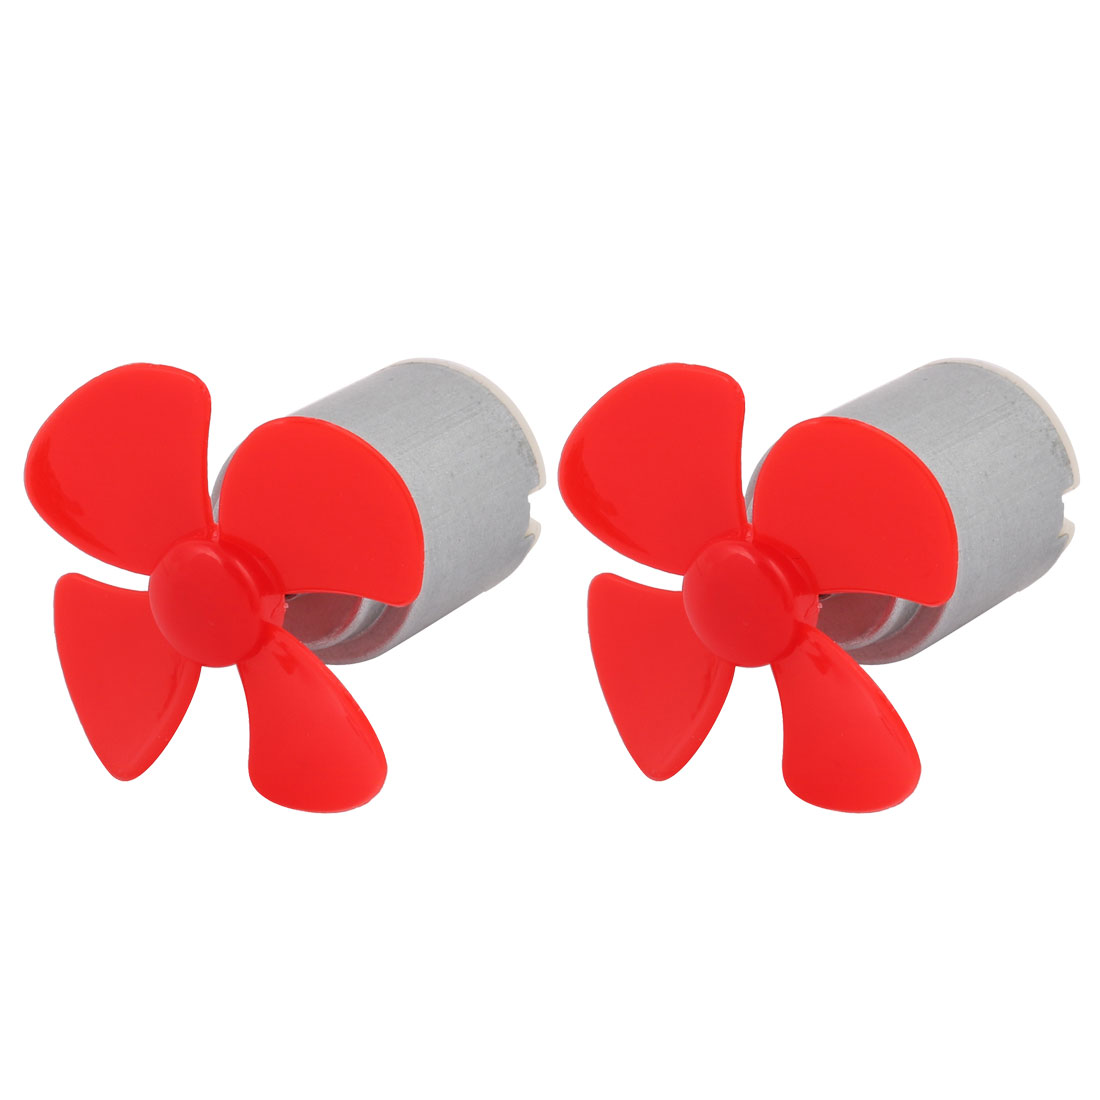 2pcs DC 3V 0.13A 11000RPM Strong Force Motor 4 Vanes 40mm Red Propeller for RC Aircraft